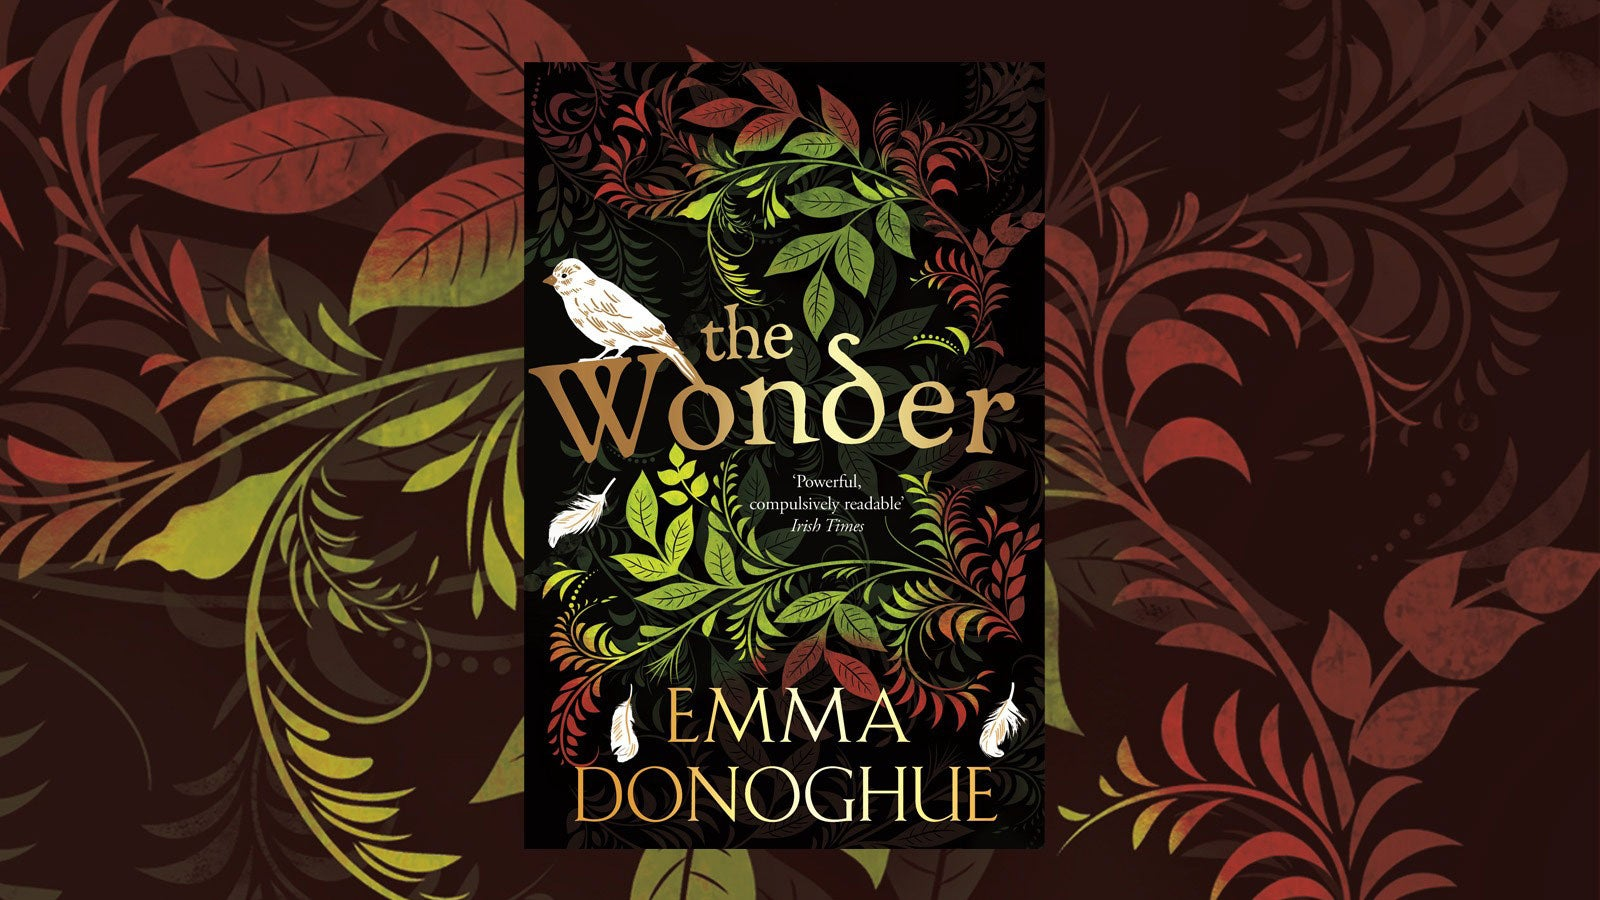 The Wonder by Emma Donoghue set against a backdrop of illustrated leaves.